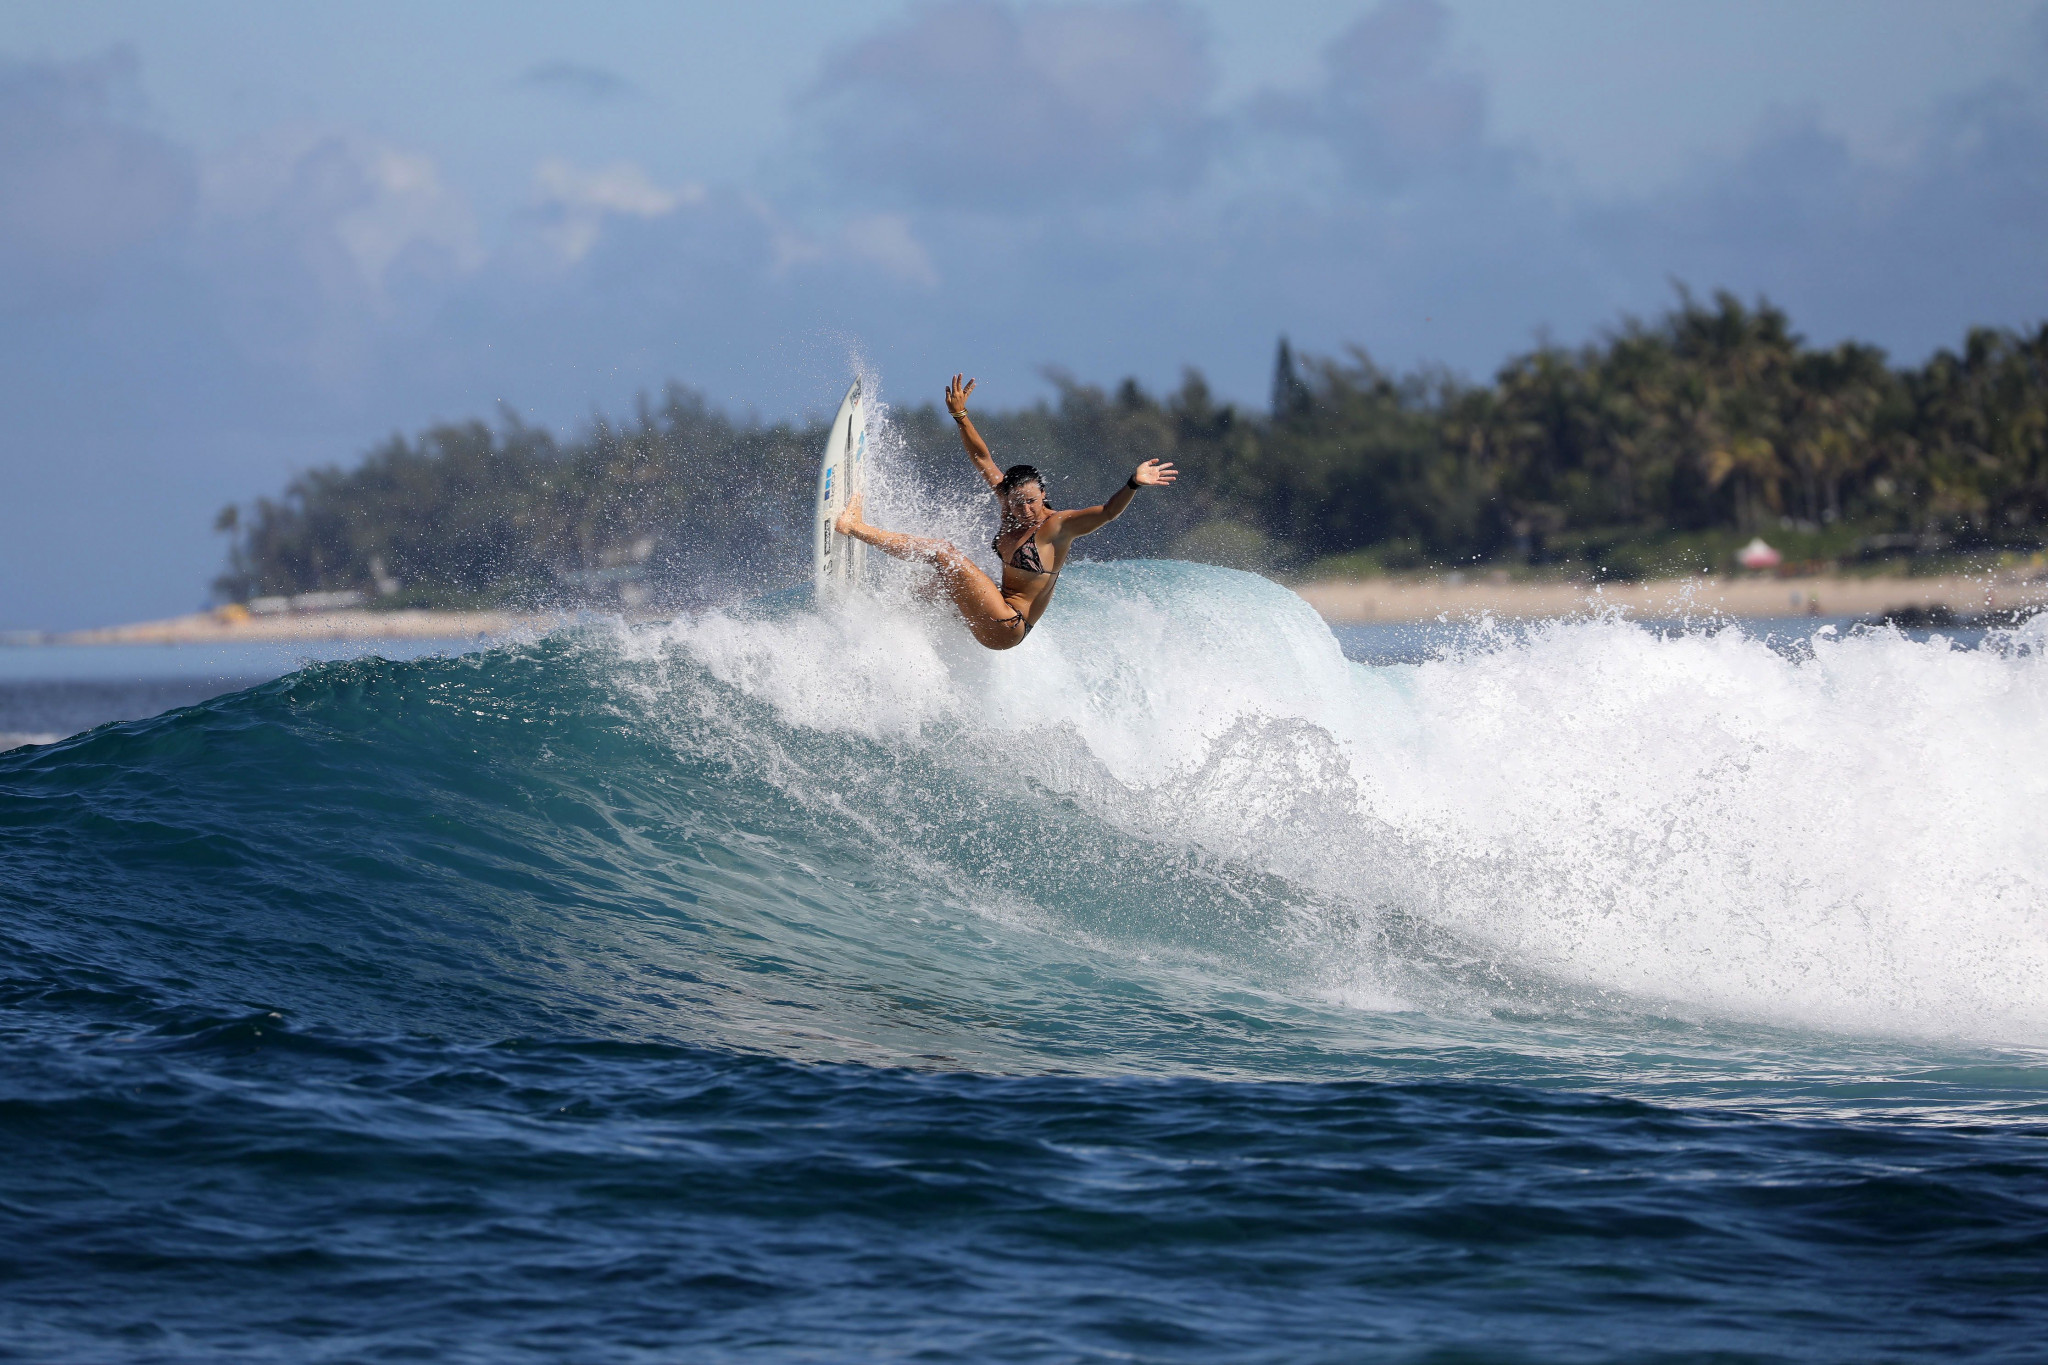 """Defay backs Paris 2024 surfing competition to look """"magnificent"""""""